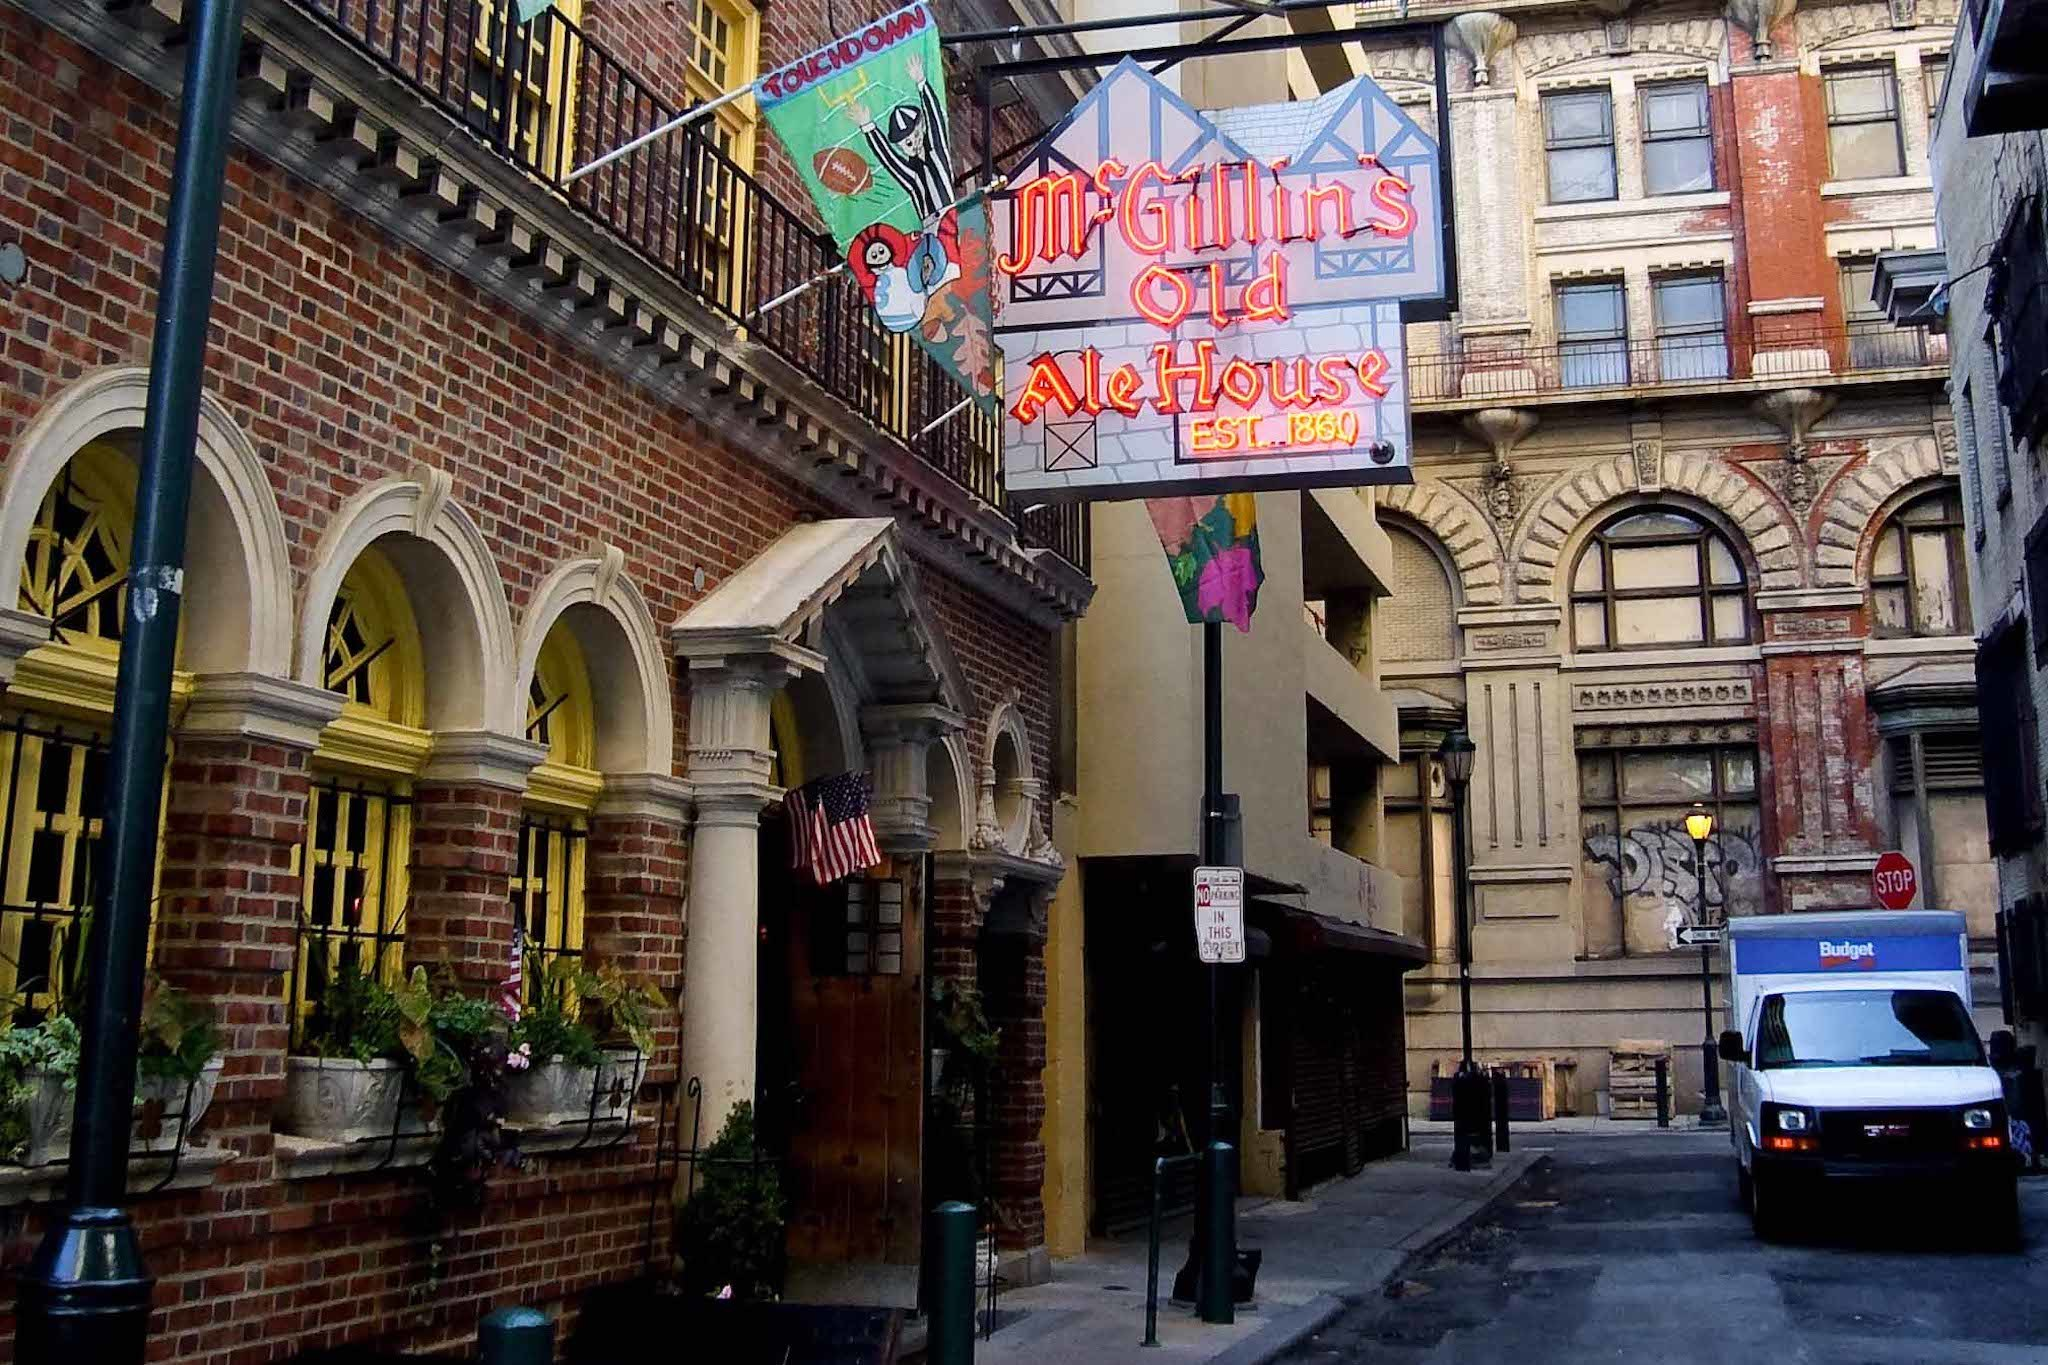 New Year's Eve at McGillin's Olde Ale House